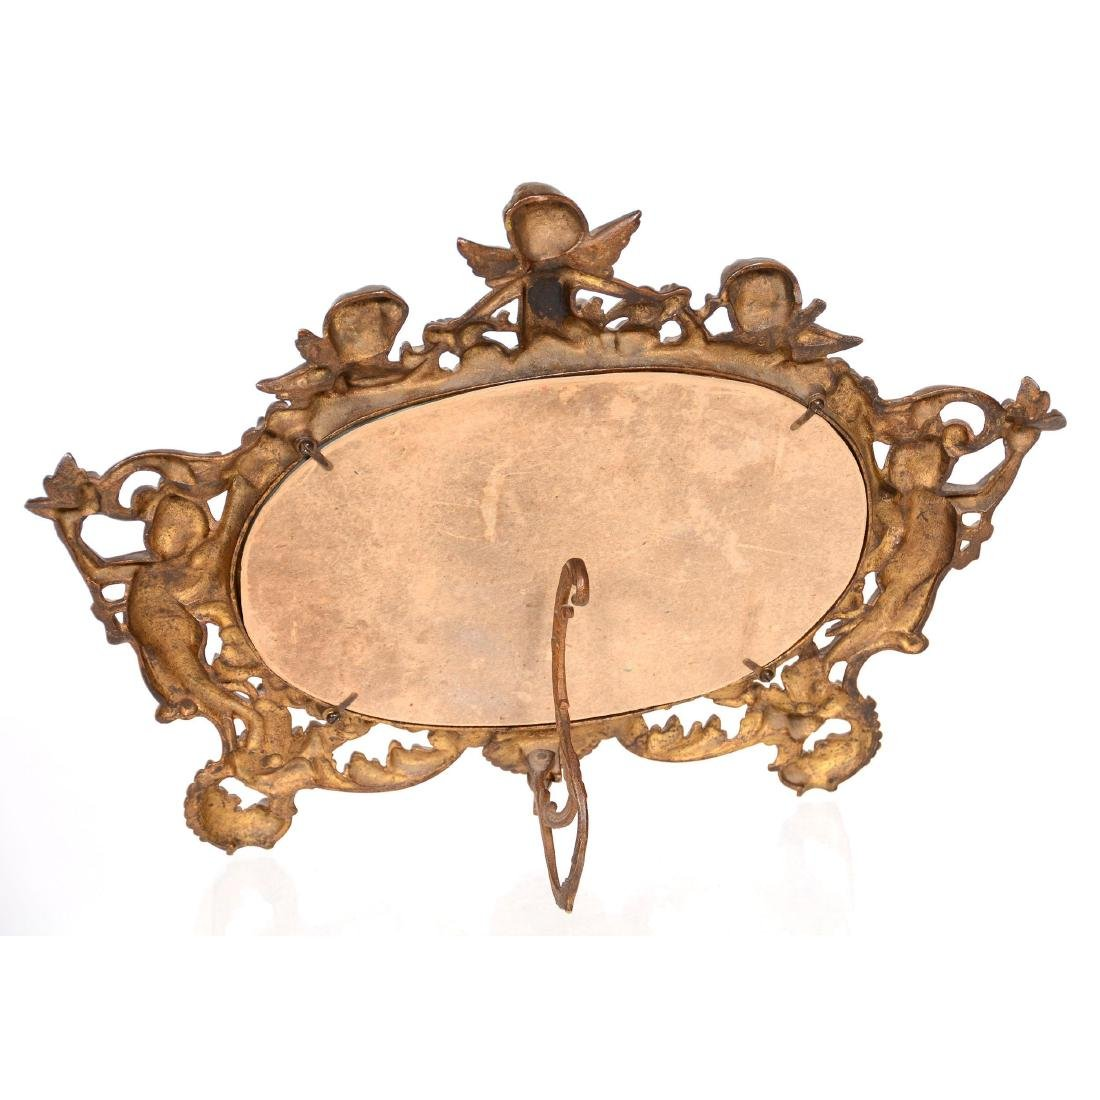 Ornate Brass Framed Stand-Up Mirror - 2